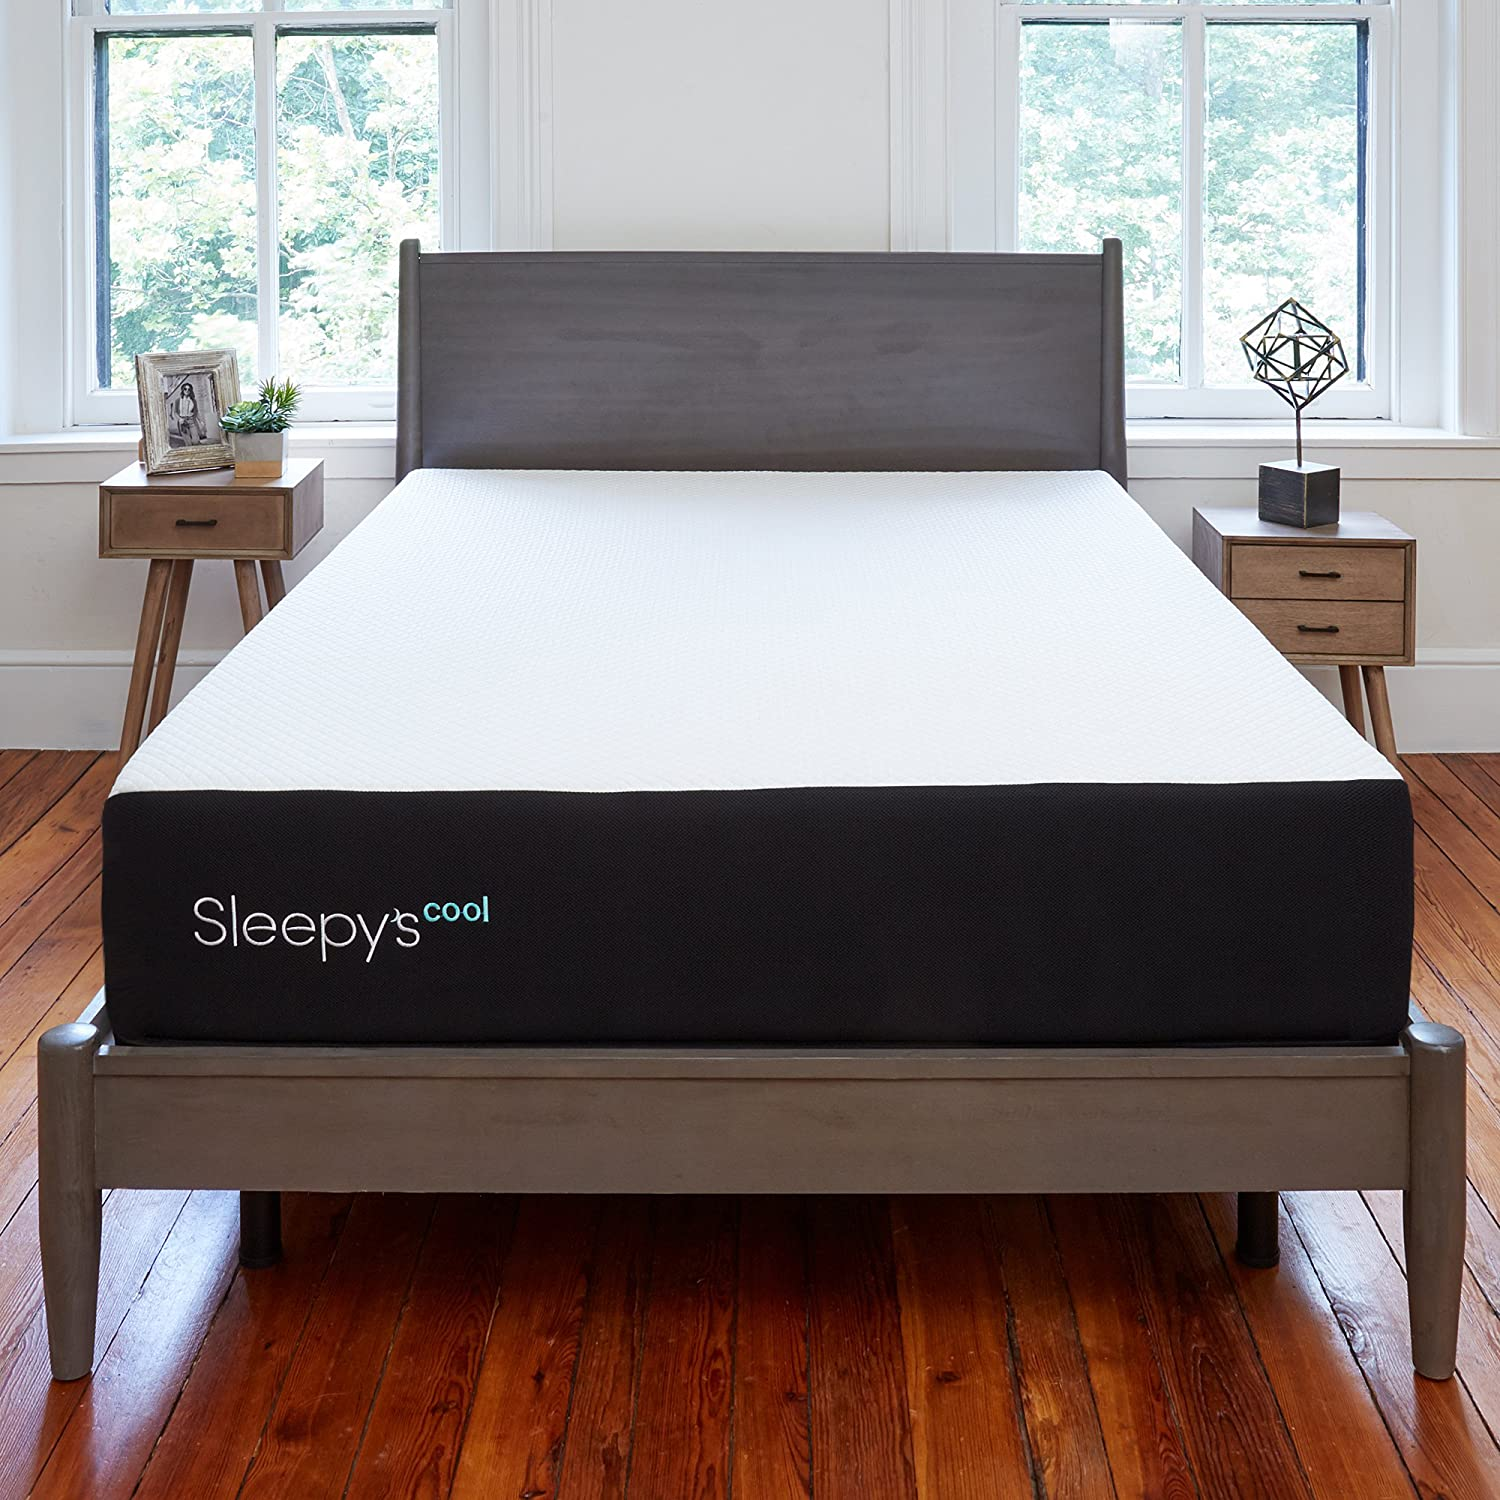 amazon com sleepy s cool plush mattress queen size kitchen dining